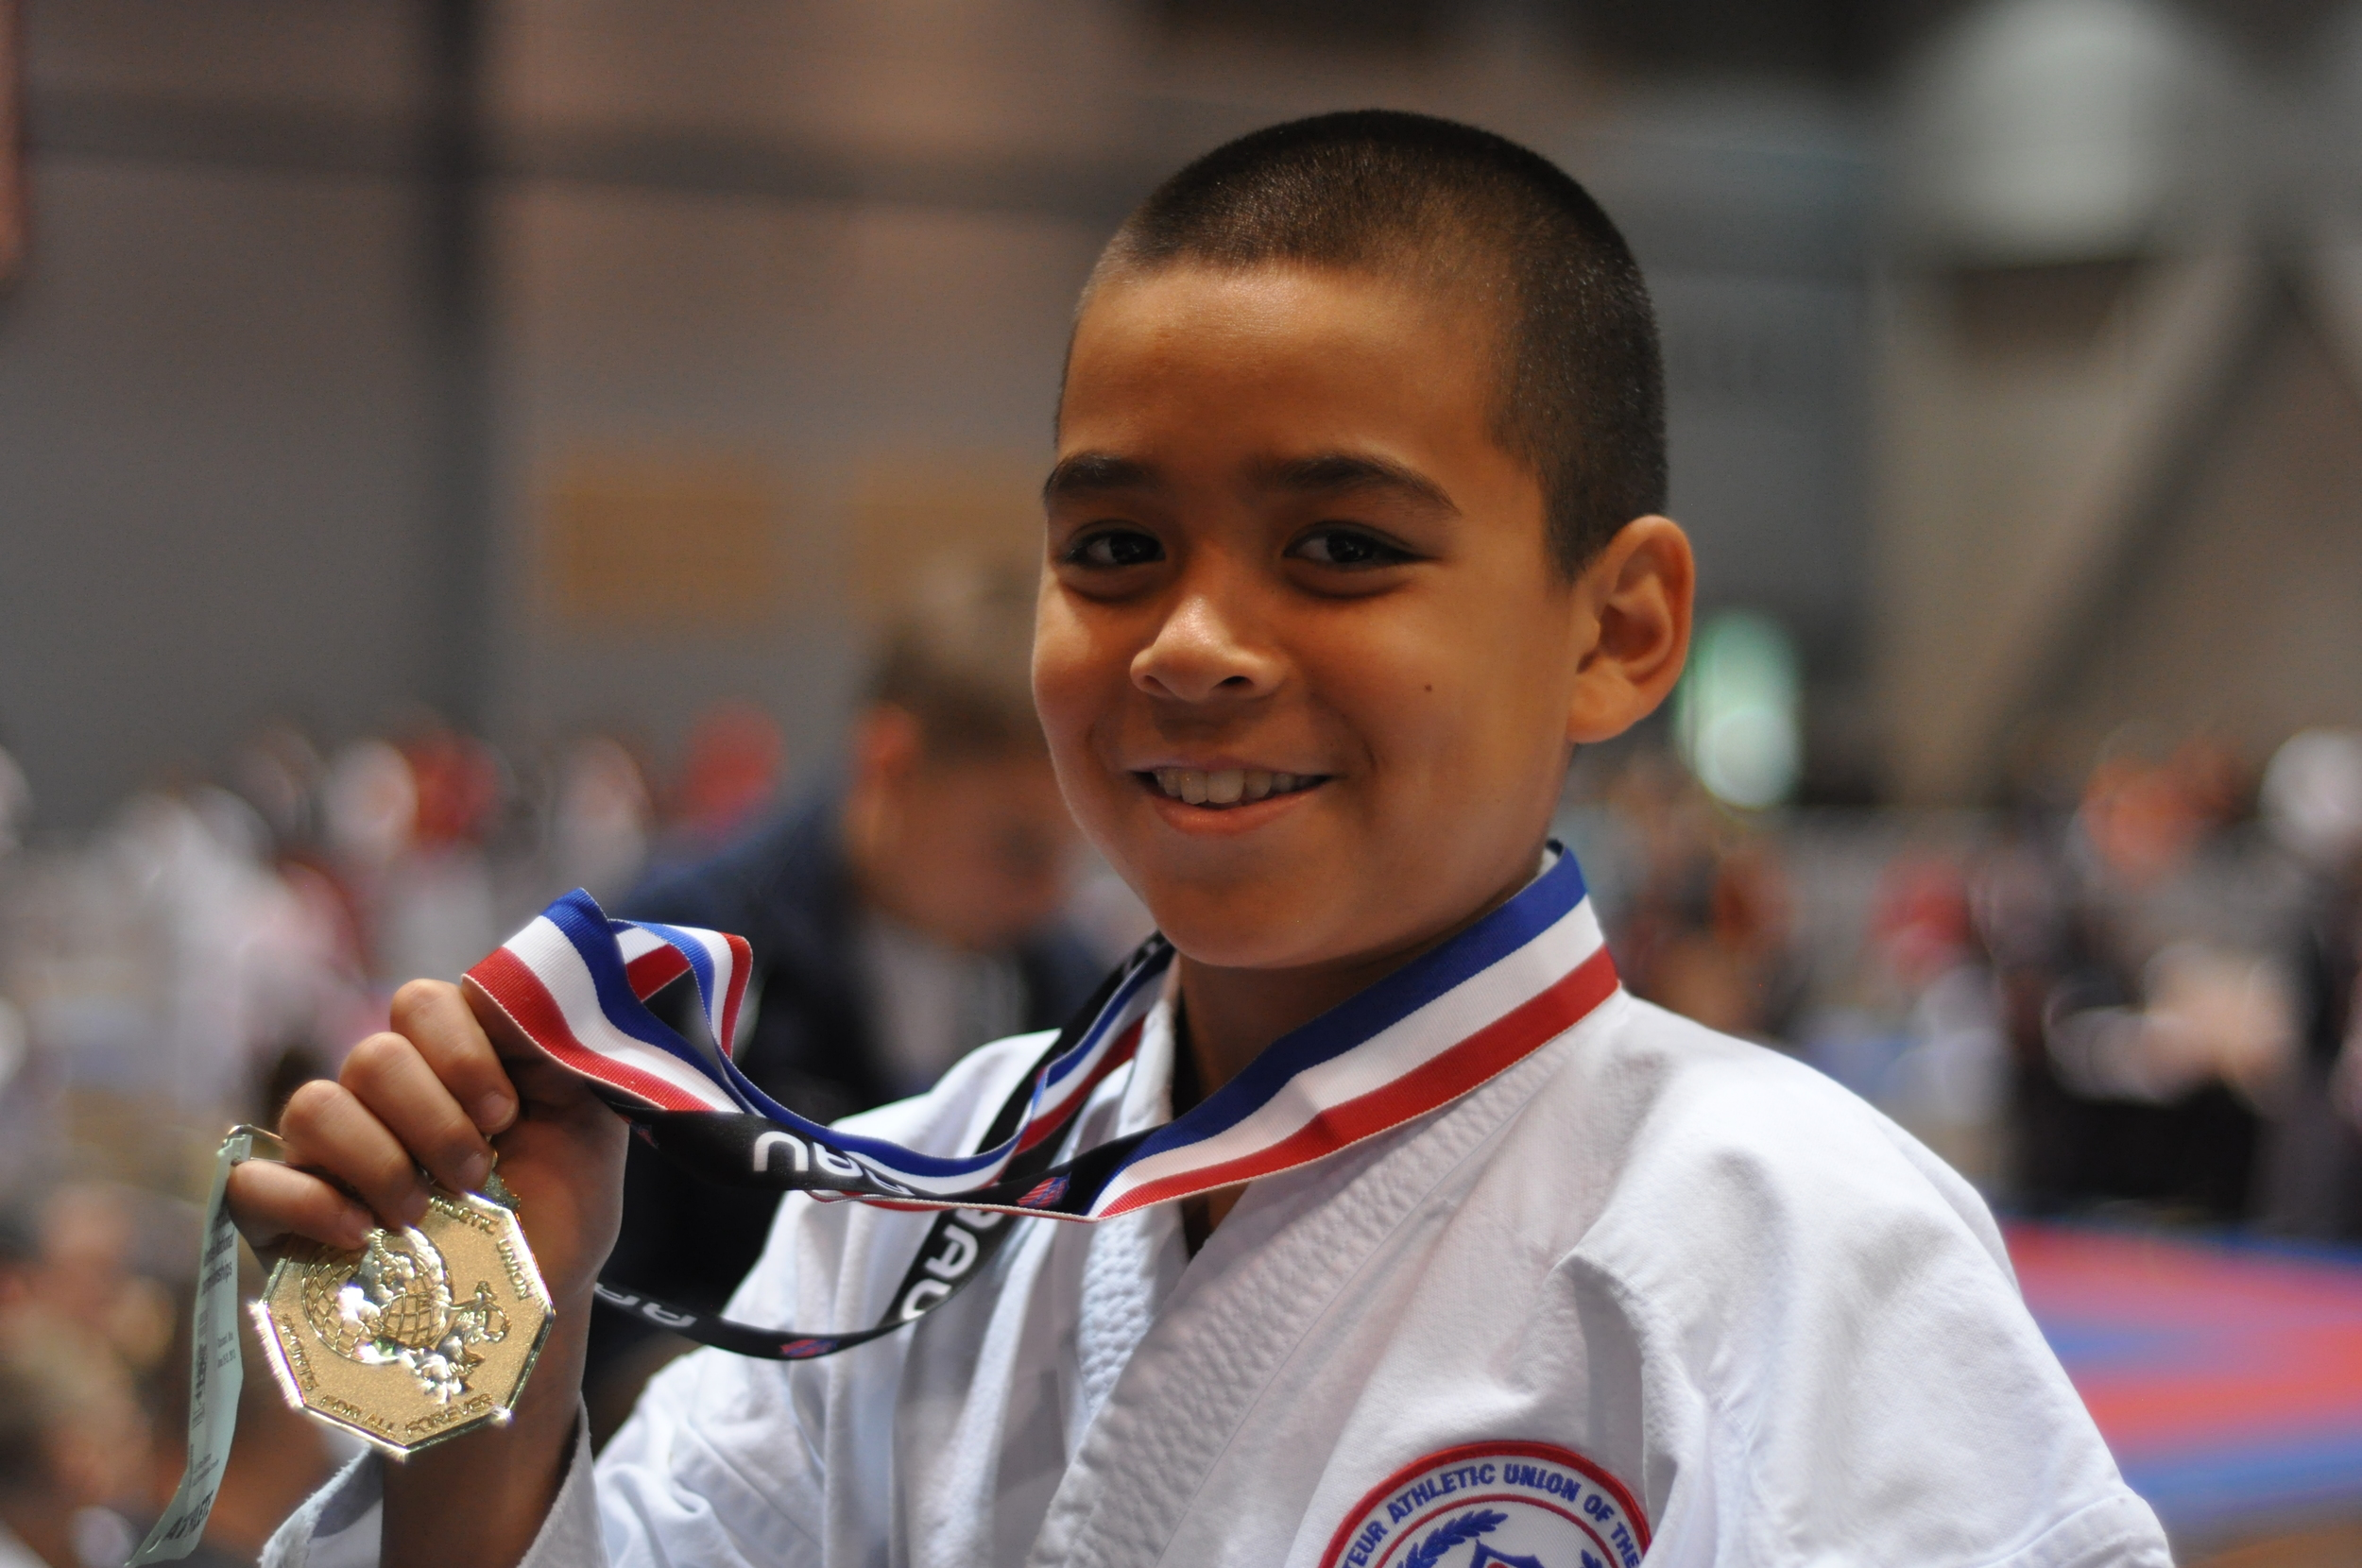 JJ with gold medal.jpg